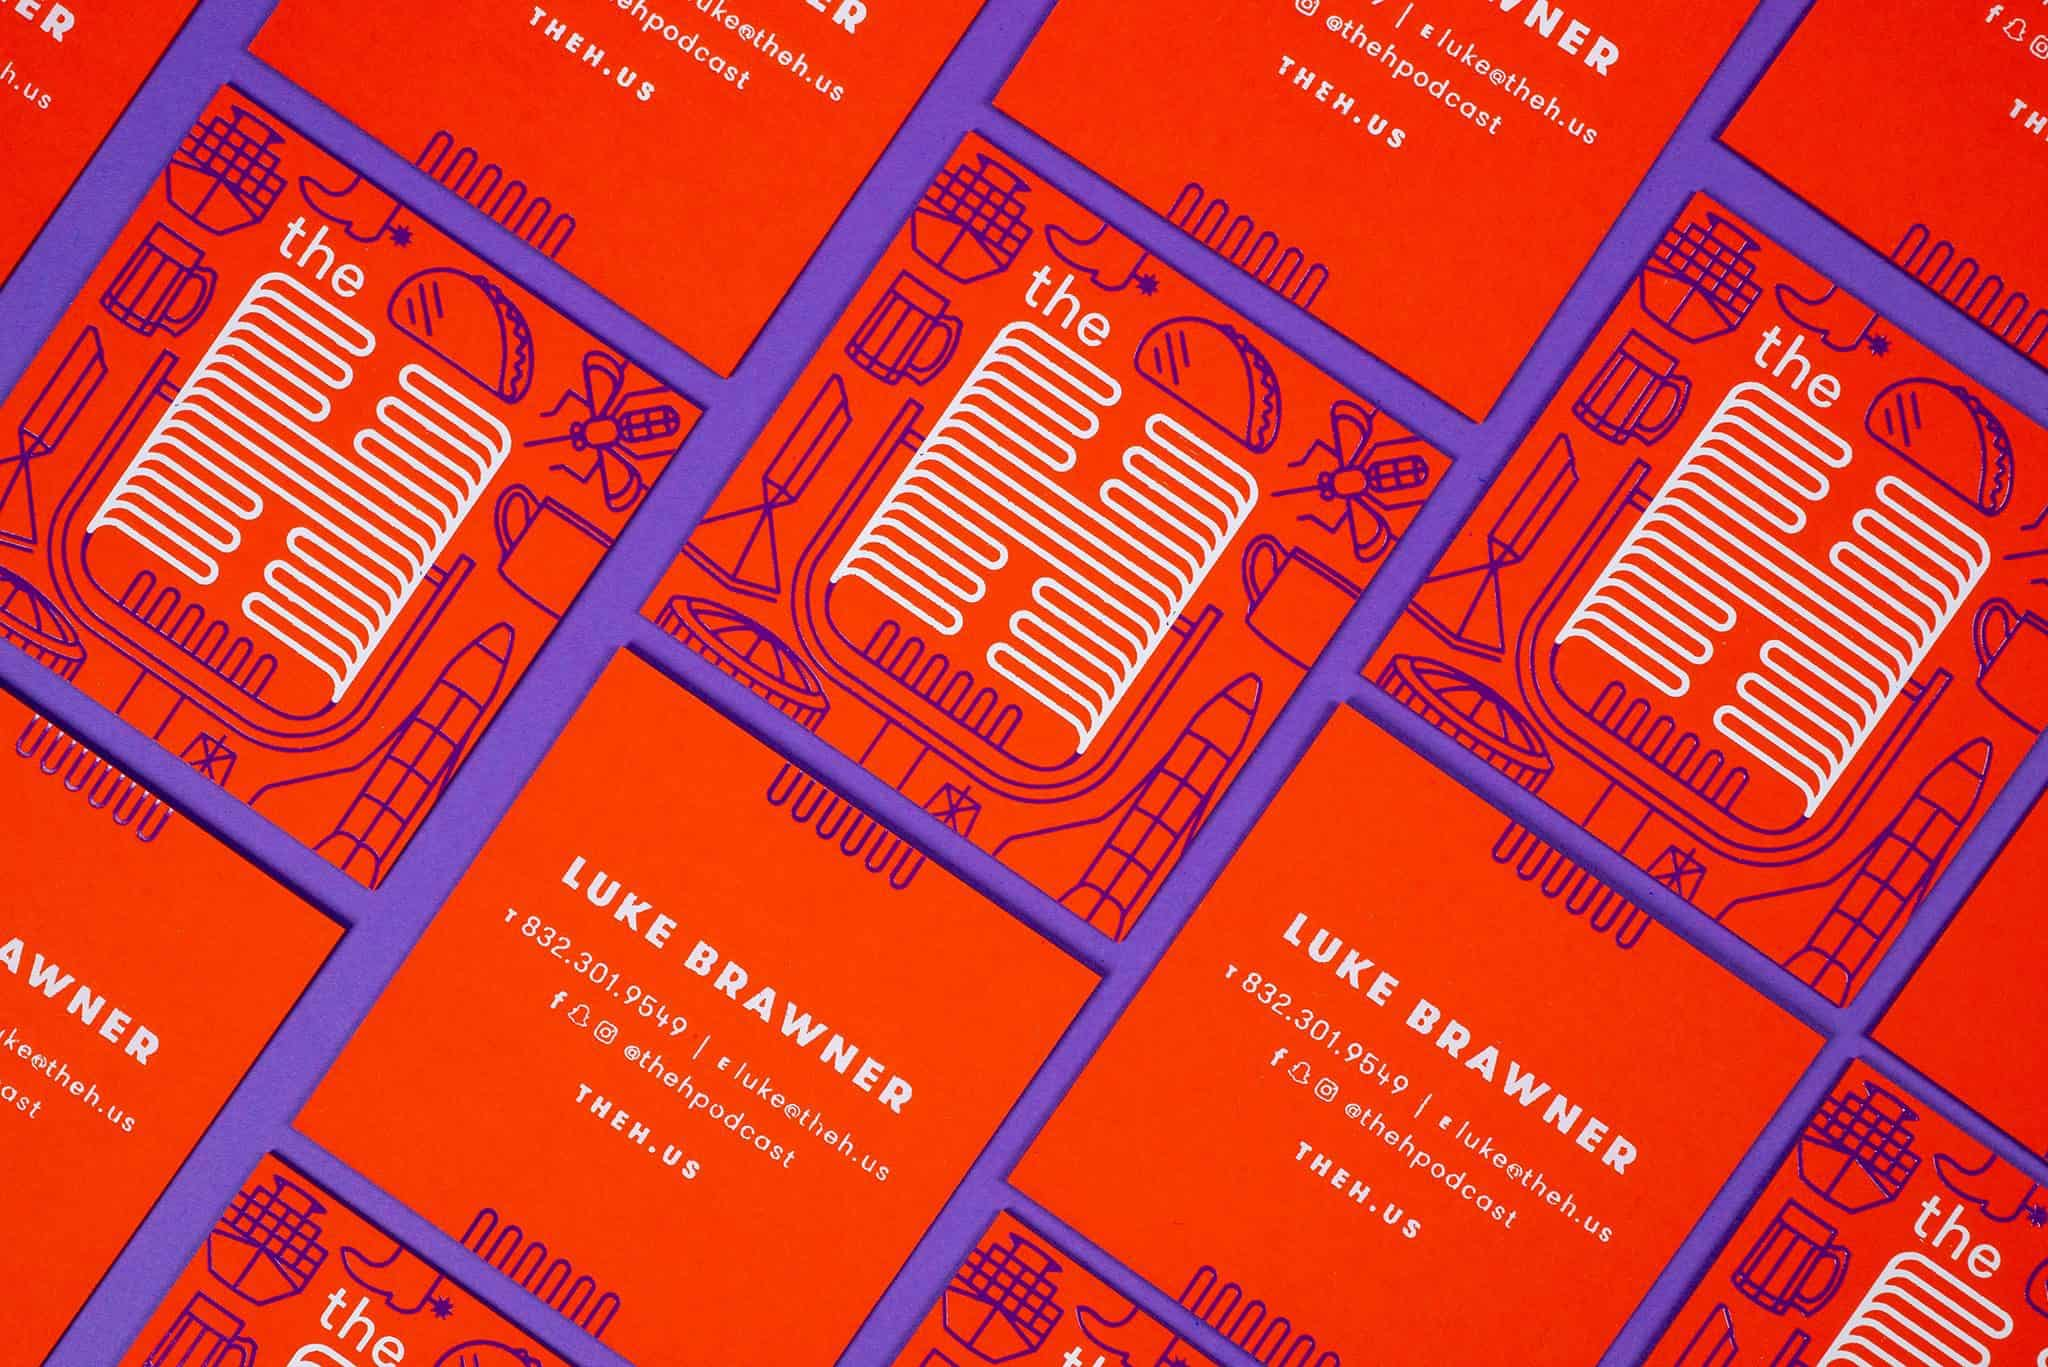 a grid of foil stamped and letterpress printed business cards for Luke Brawner's podcast, The H | Designed by Field of Study: A Design & Branding Consultancy | Jennifer Blanco & John Earles